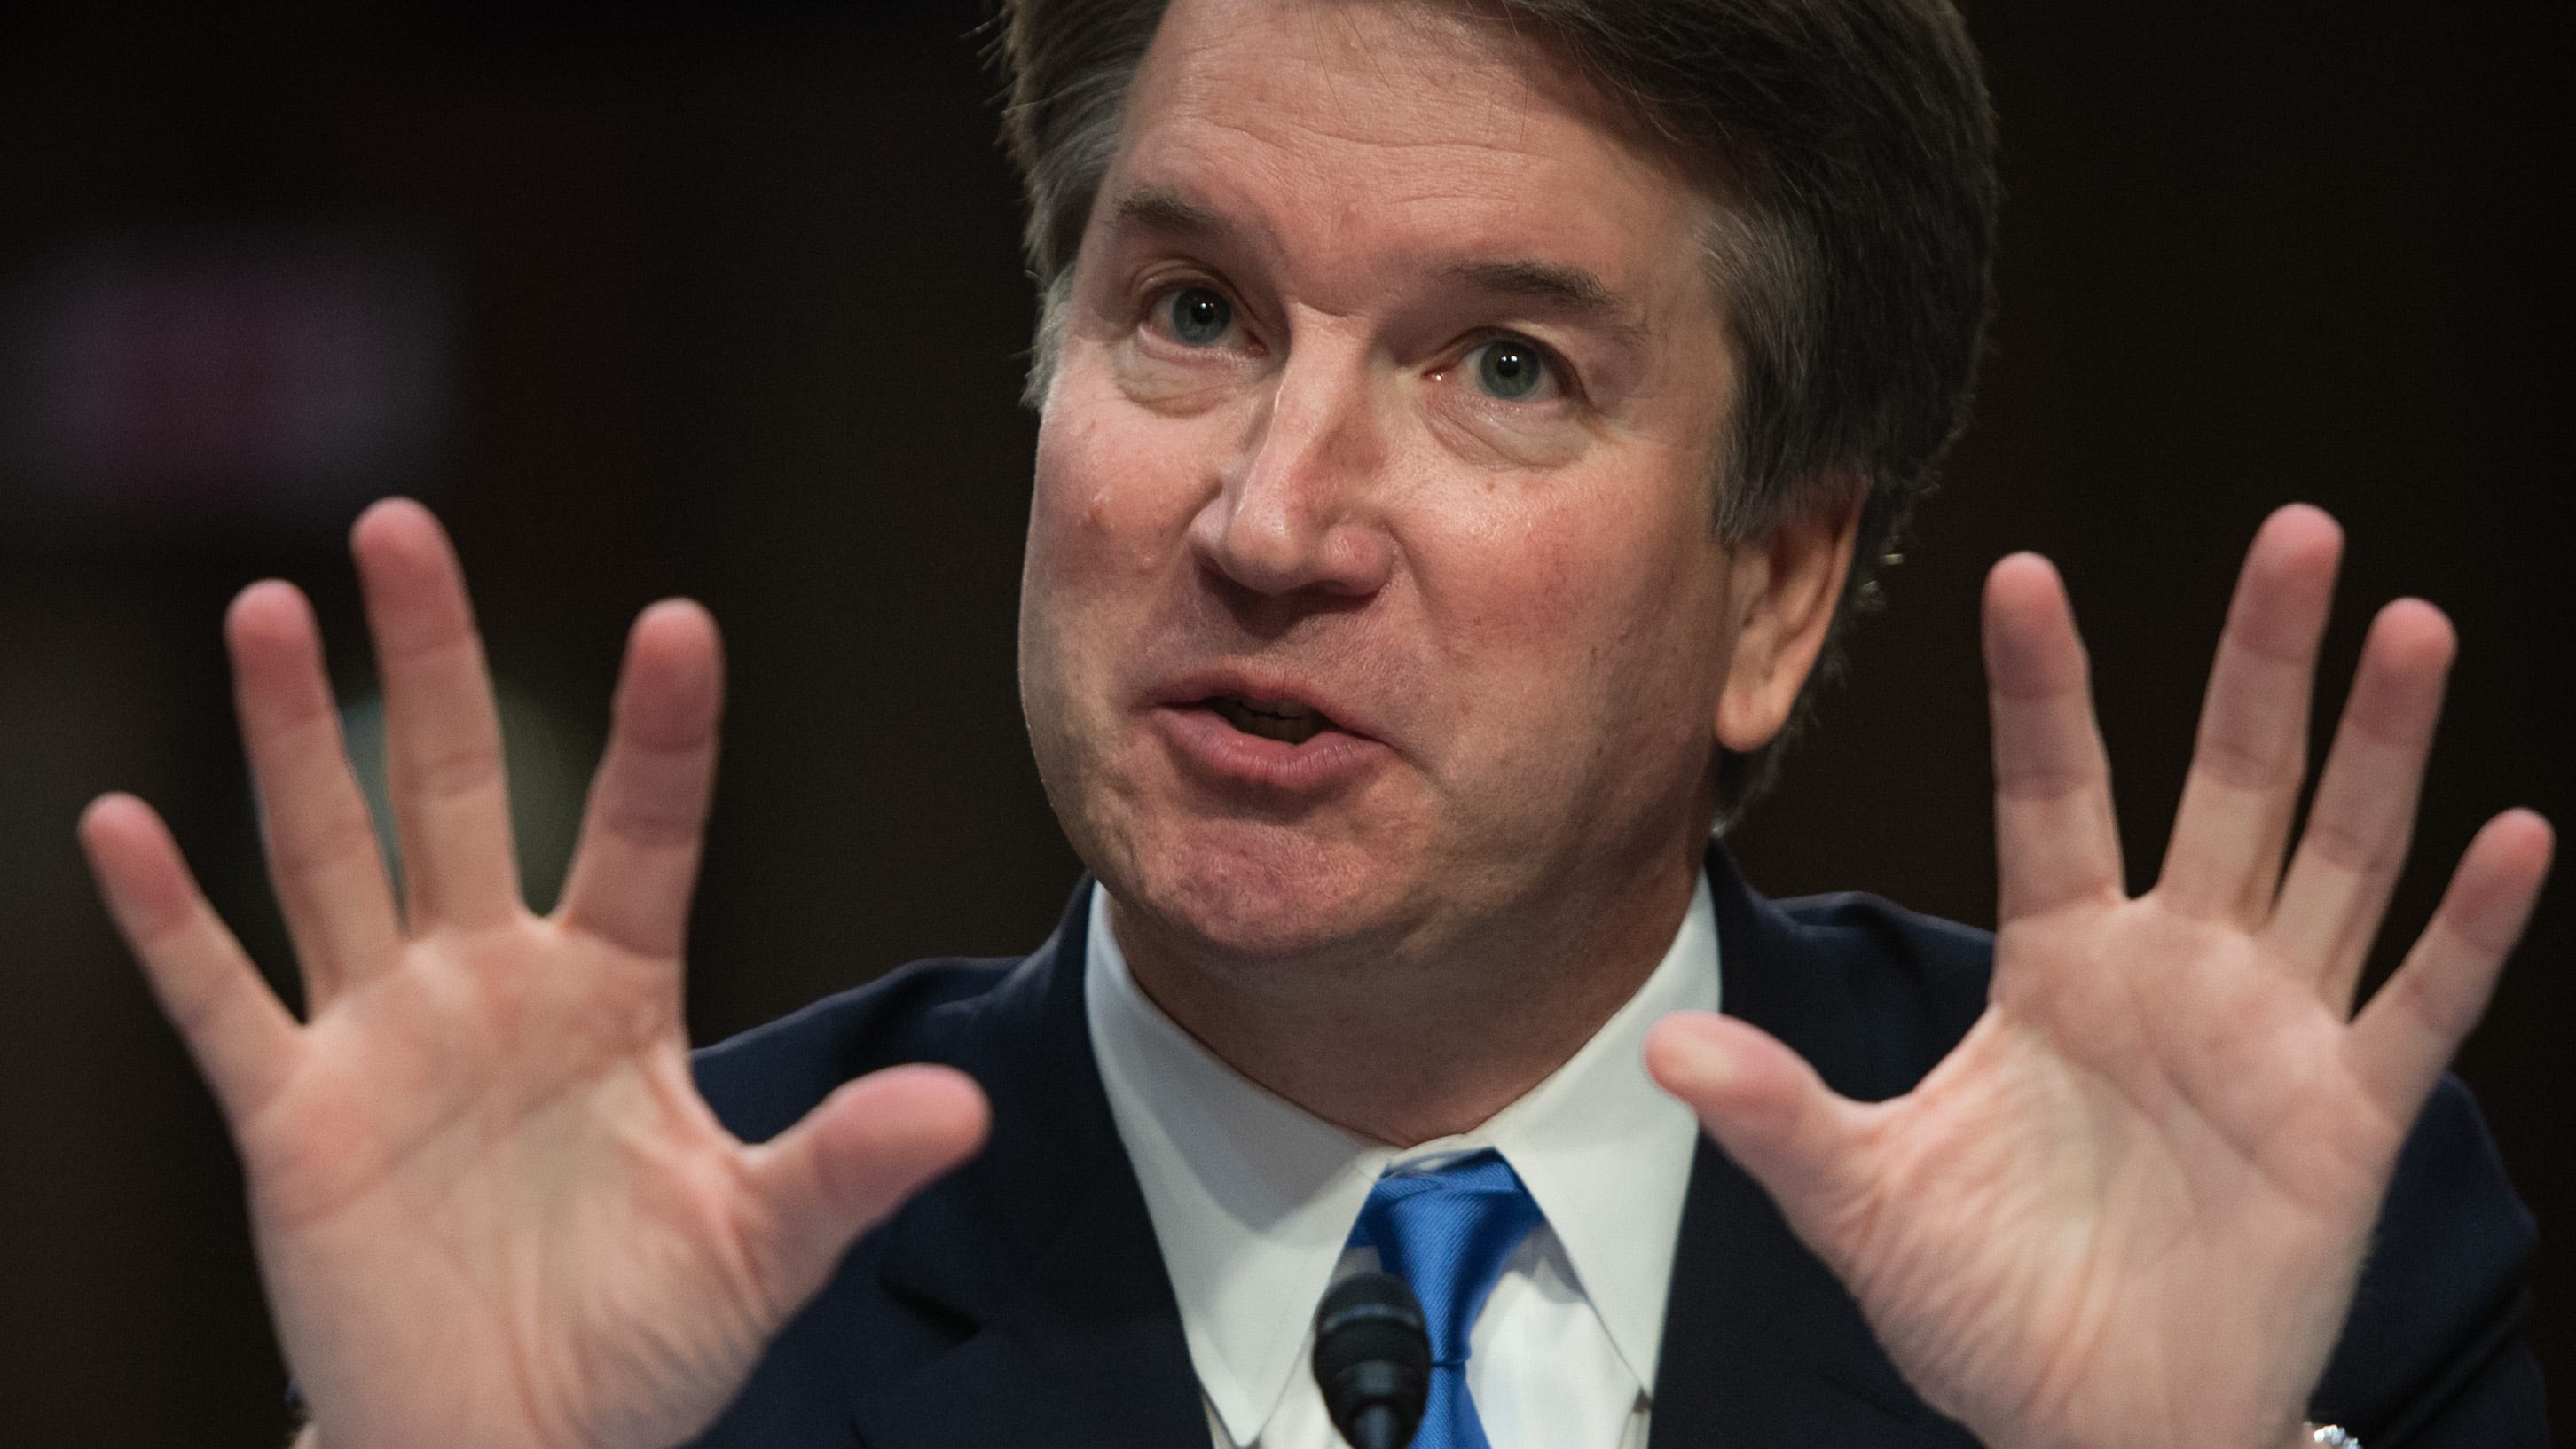 In this file photo taken on Sept. 5, Supreme Court nominee Brett Kavanaugh speaks on the second day of his confirmation hearing in front of the US Senate in Washington DC. Democrats in the US Senate are investigating allegations of sexual misconduct against President Donald Trump's nominee for the Supreme Court.